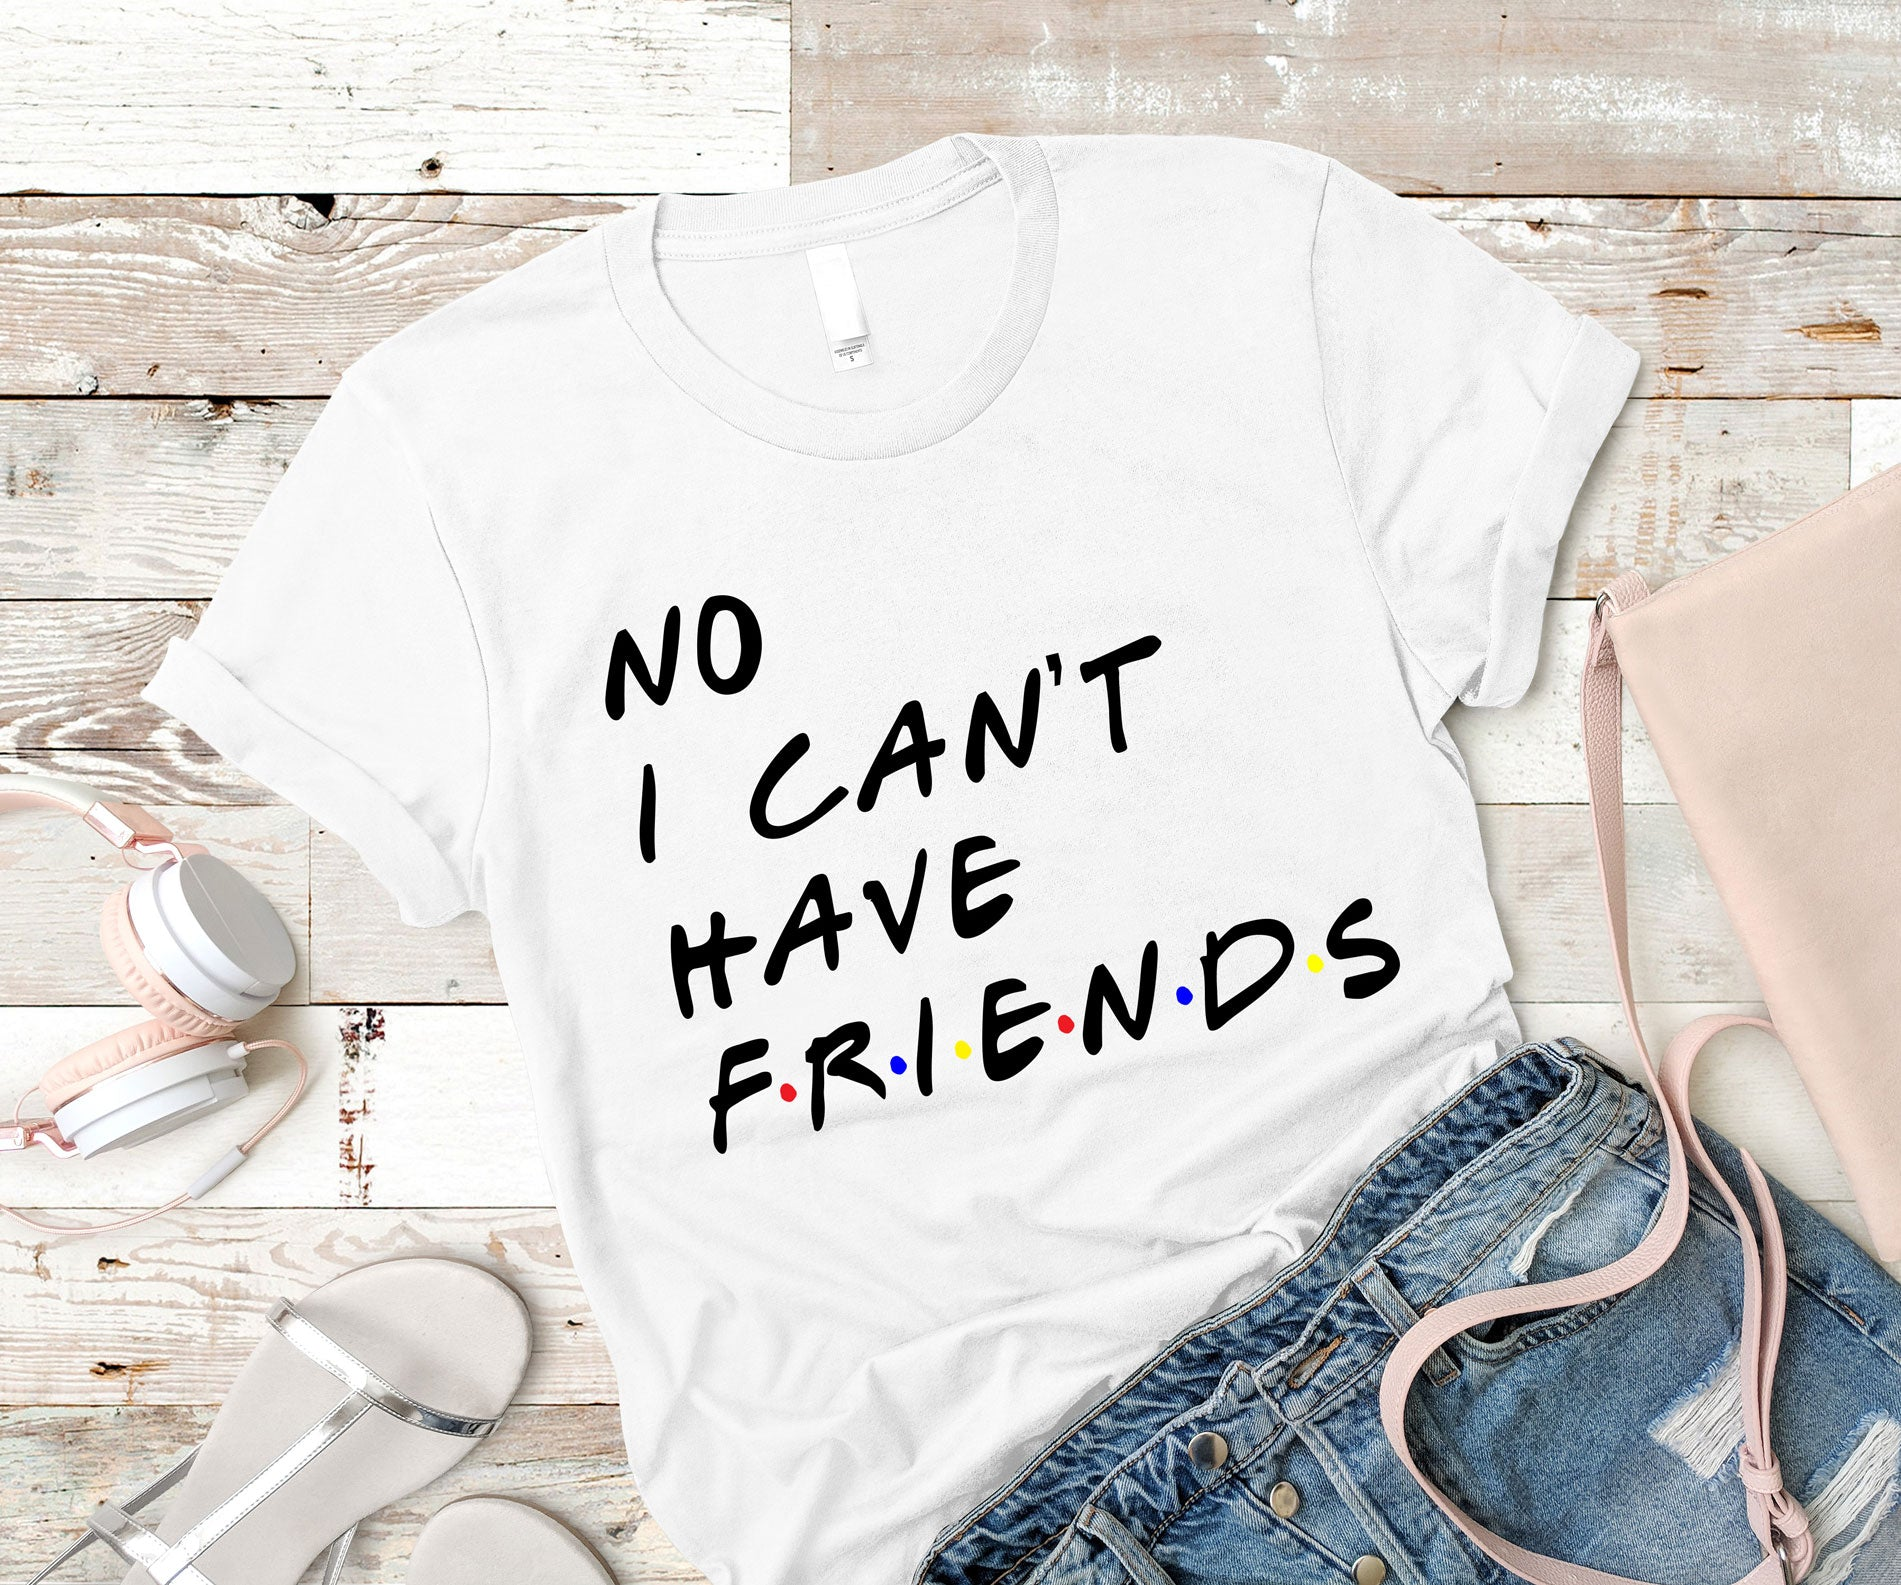 No i can't have friends Tee-Luxury Brand LA - Luxury Brand LA - Shop Latest Trends and Hottest Apparel from Luxury Brand LA